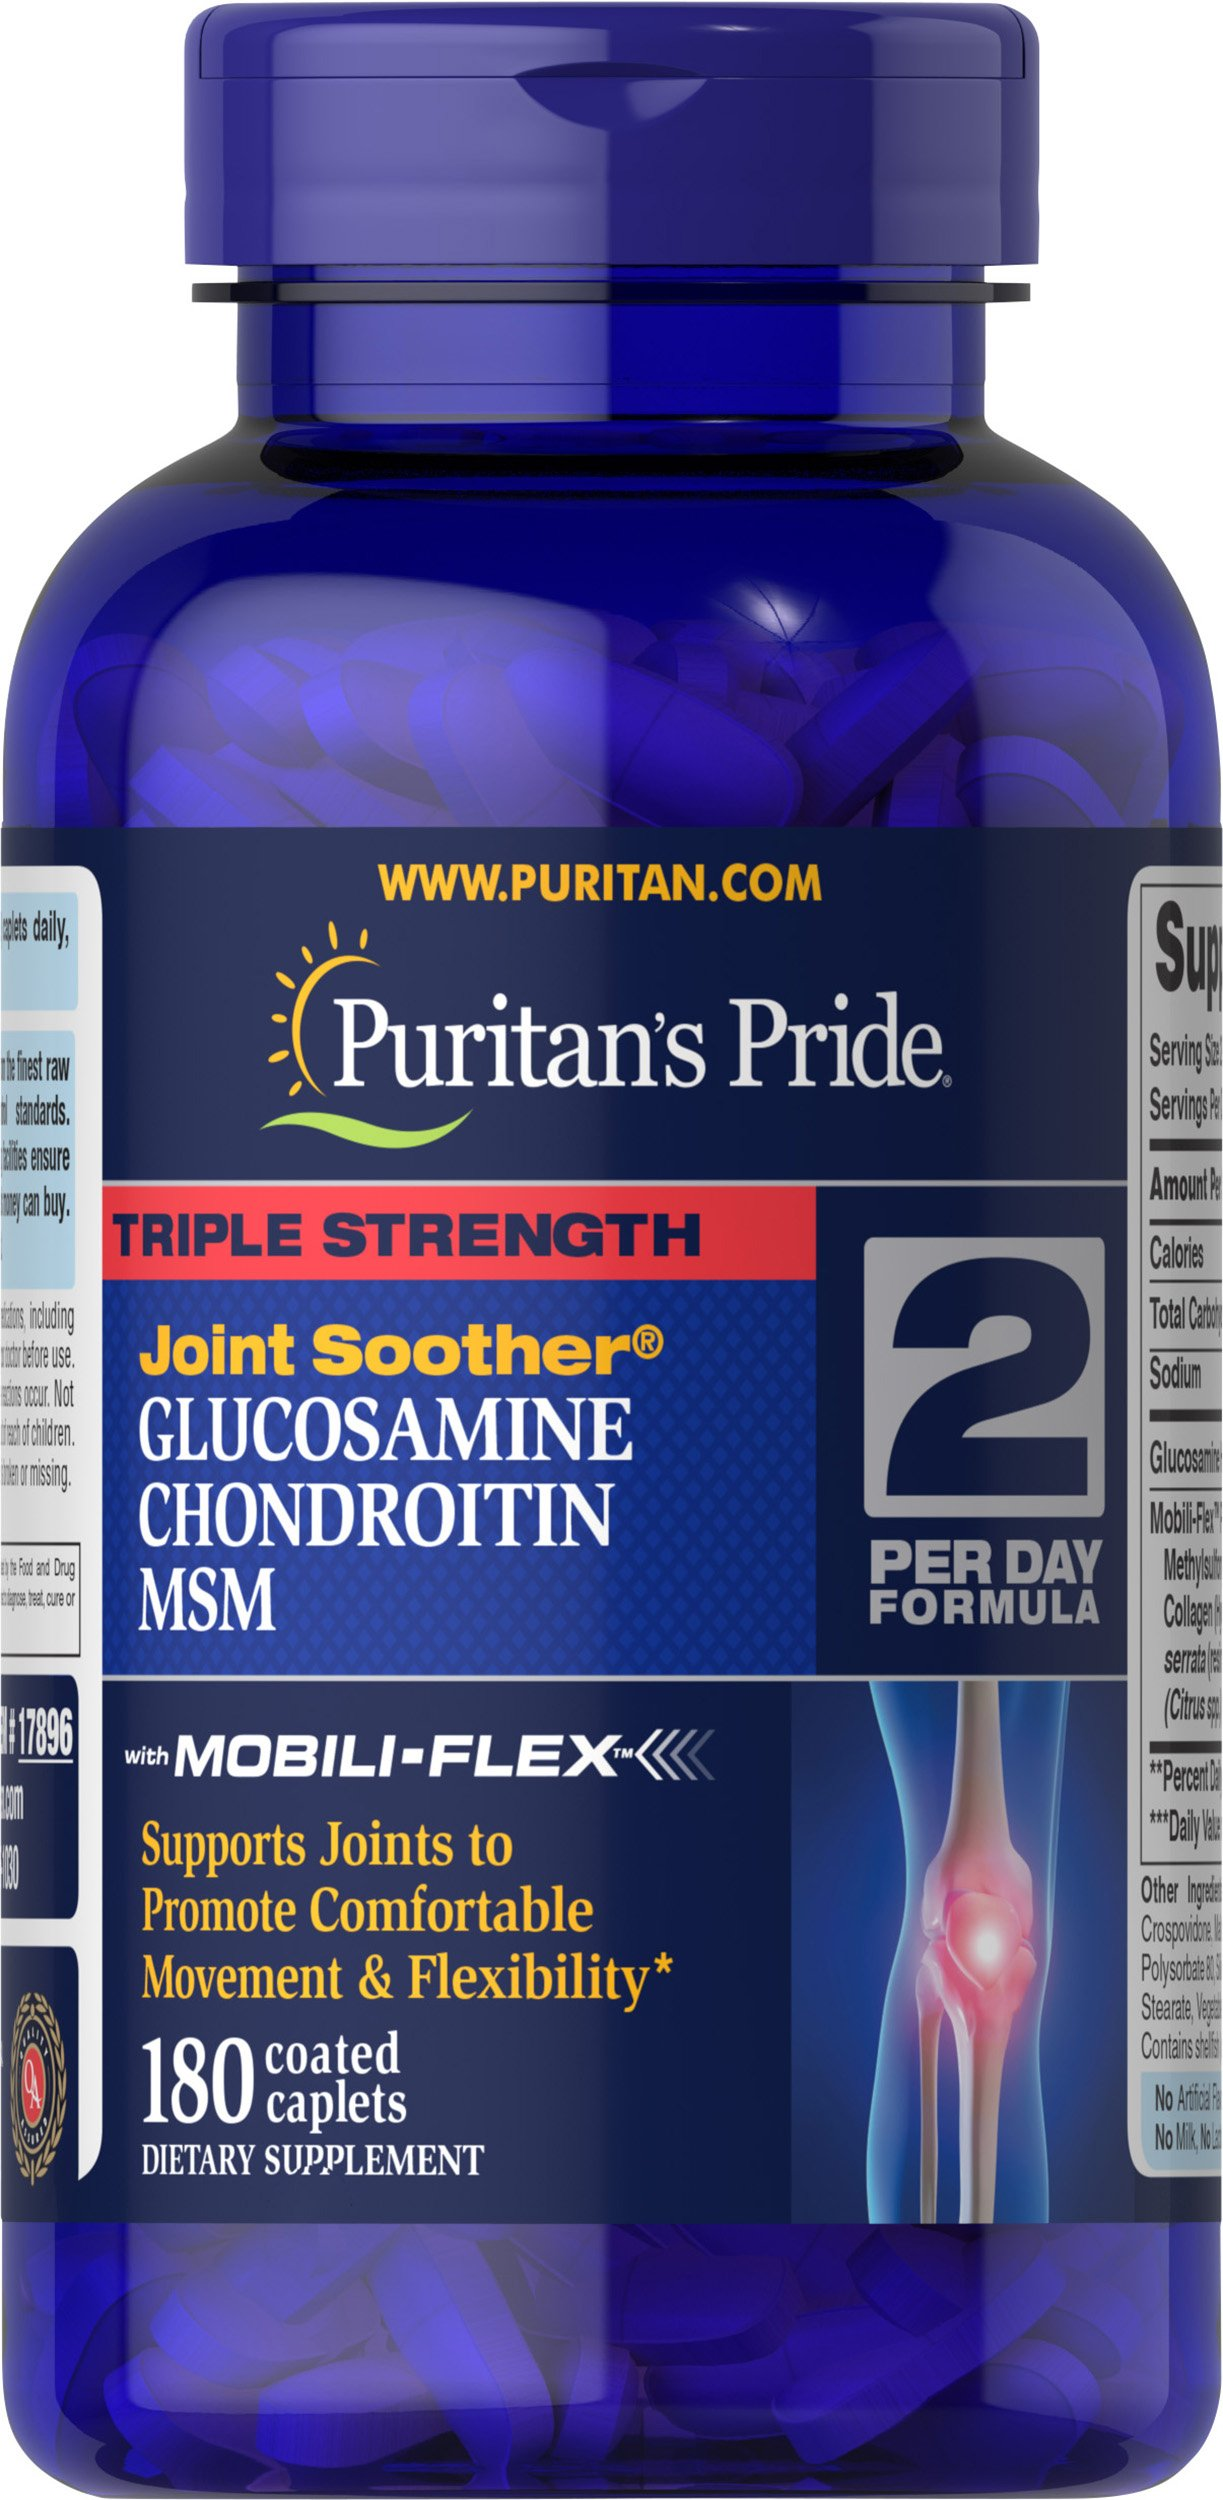 Puritan's Pride Triple Strength Glucosamine, Chondroitin and MSM Joint Soother�, Joint Support Supplement**, 180 Caplets